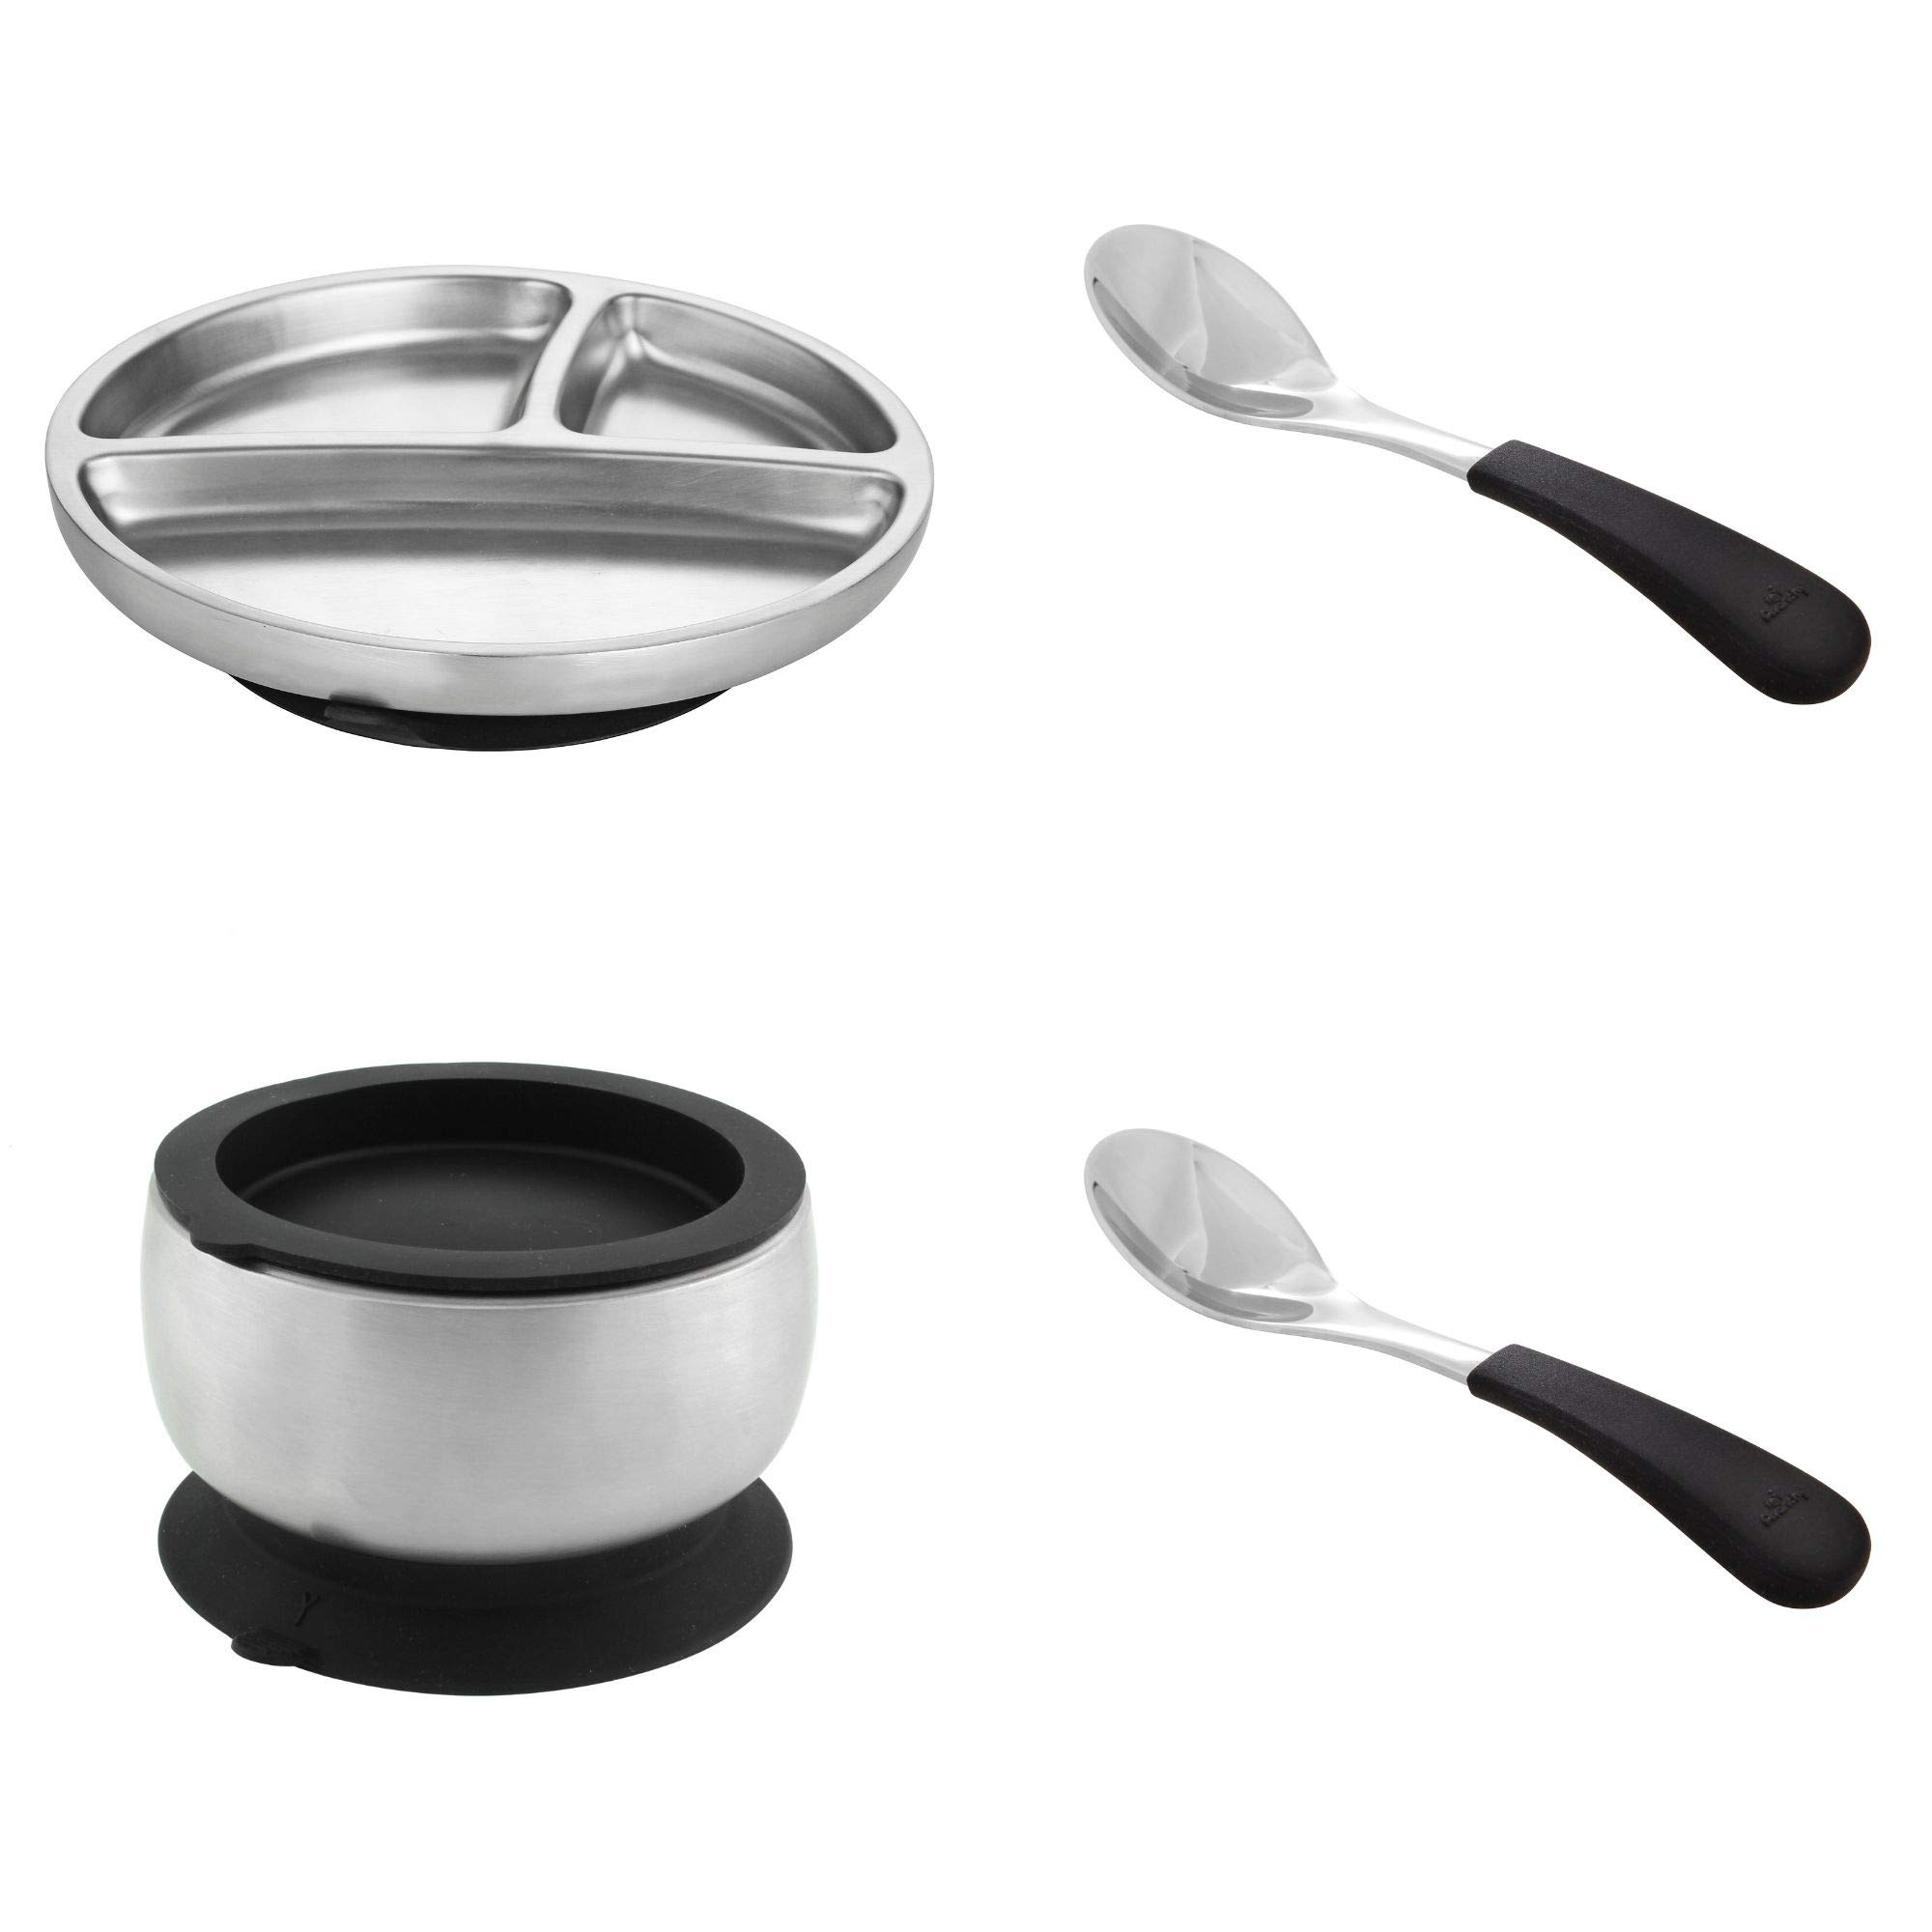 Avanchy Stainless Steel Baby, Toddler Feeding Divided Plate + Bowl + 2 Spoons Giftset. Infant, Kid or Child Gift. 18/8, BPA Free, BPS Free, Lead Free and Phthalate Free. Black